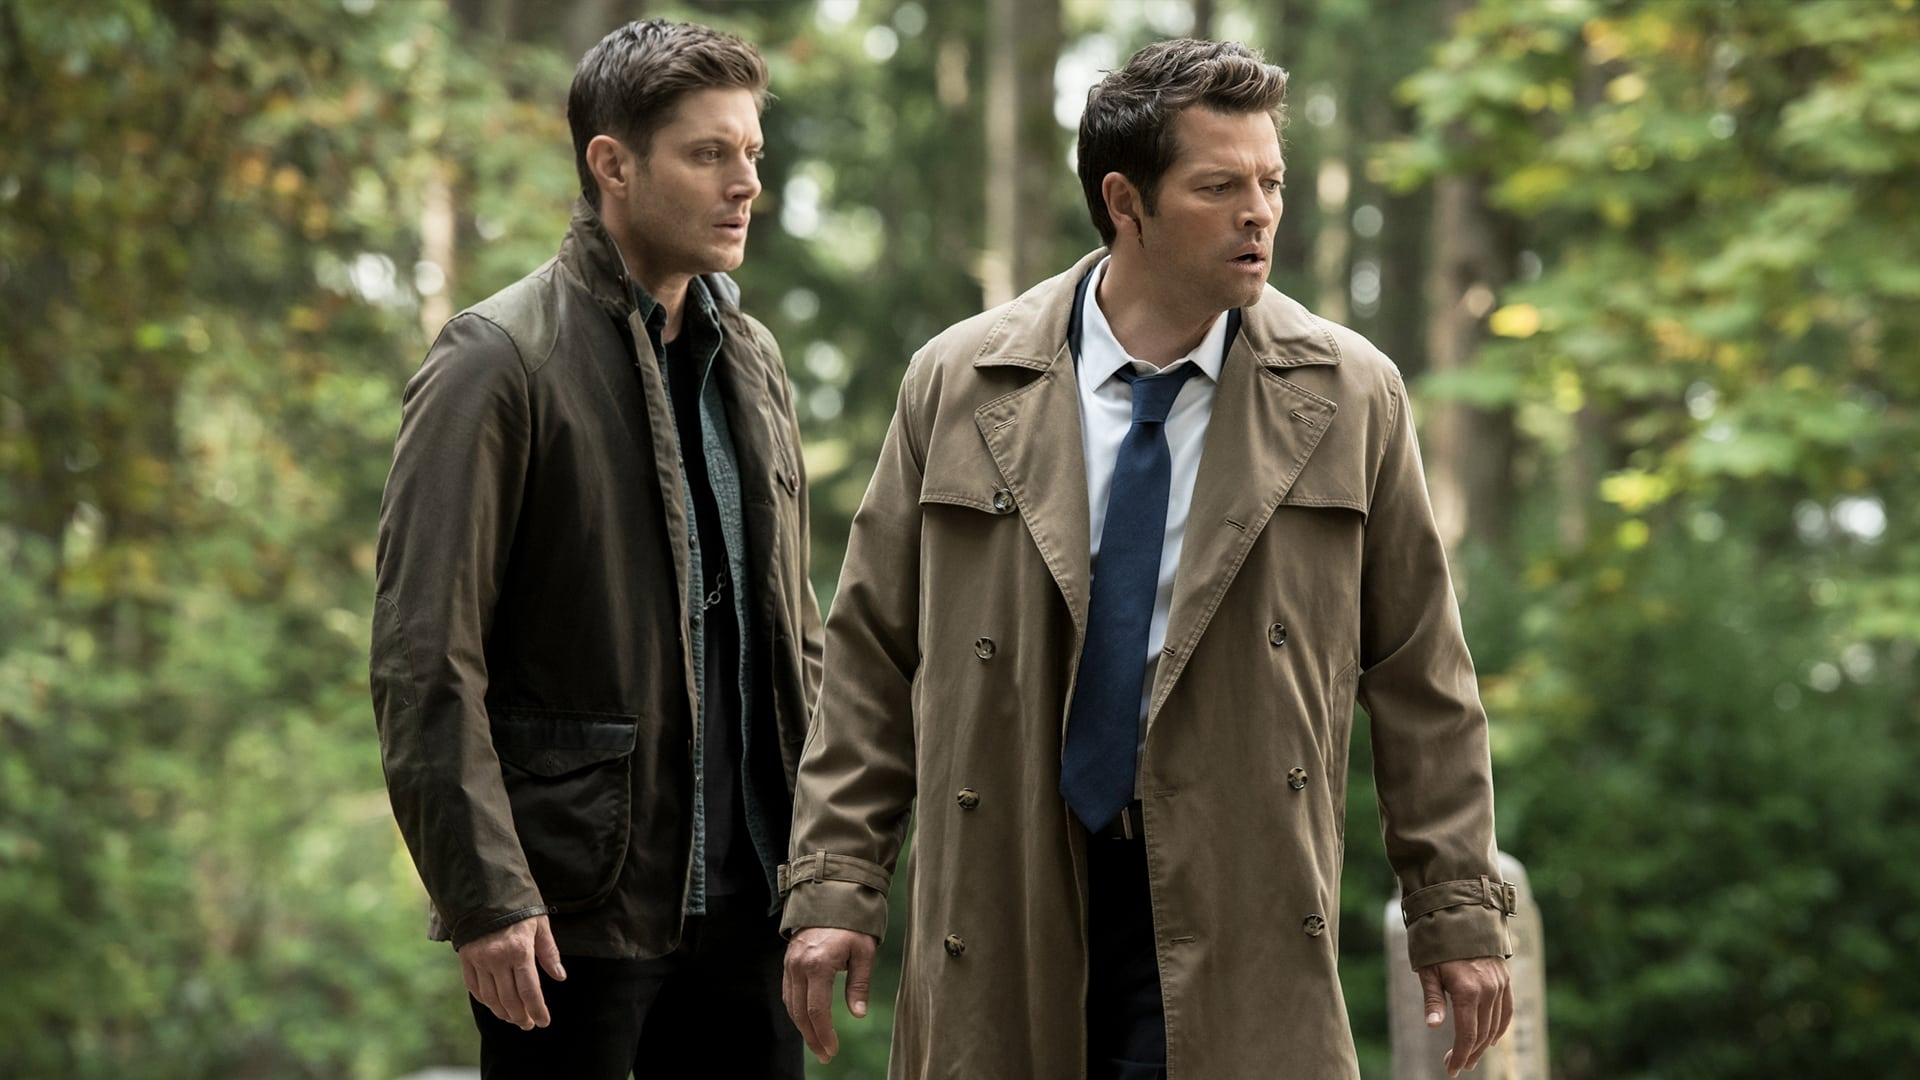 Supernatural - Season 15 Episode 3 : The Rupture